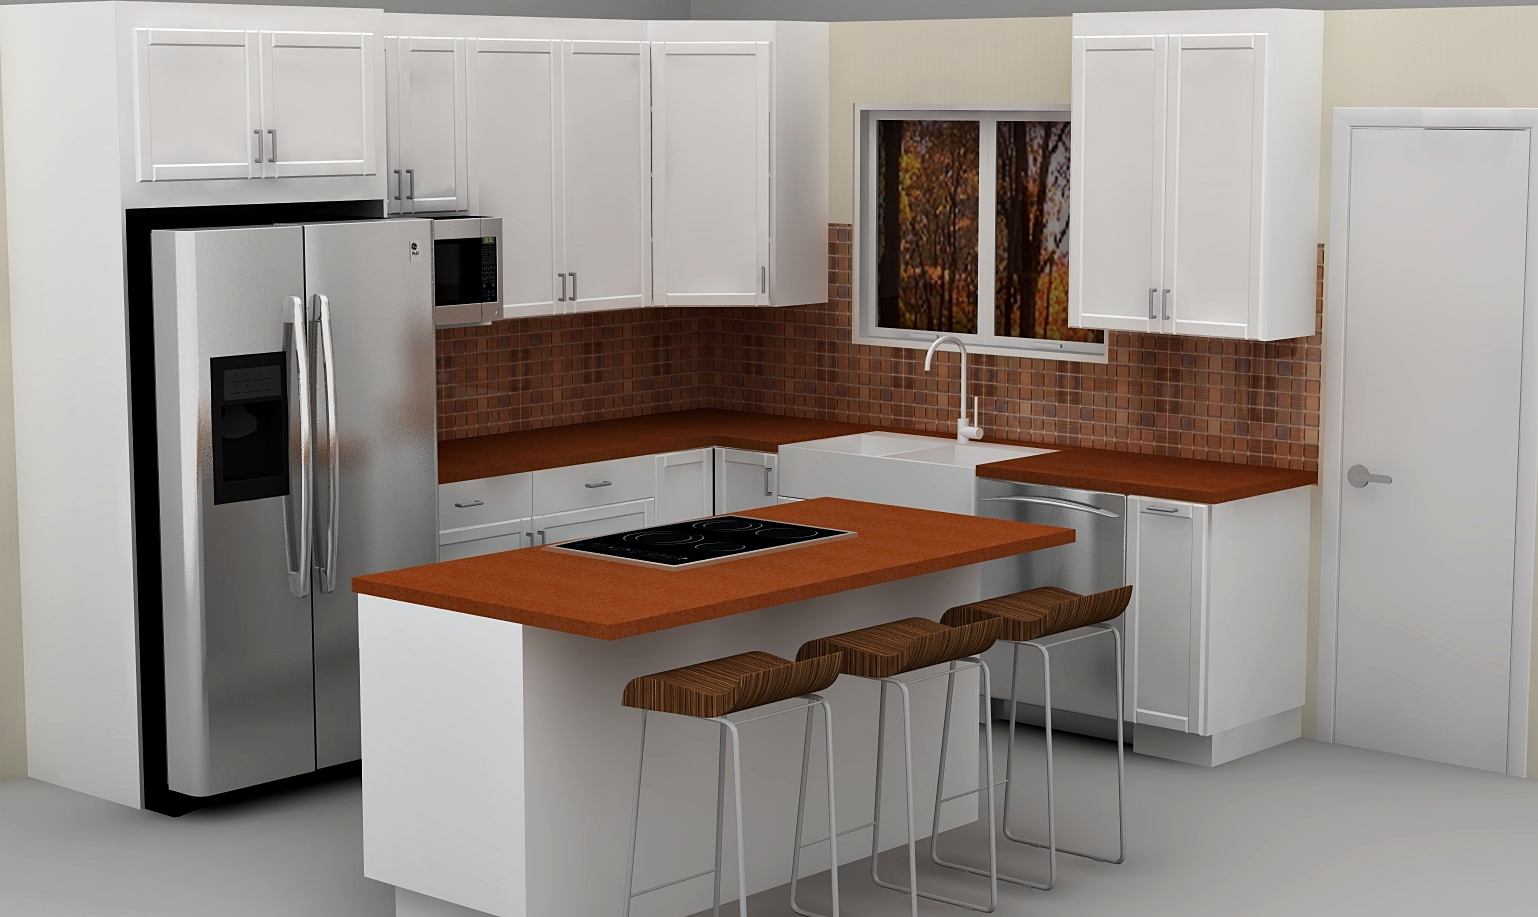 Brighter Kitchen Design Application From IKEA Online (View 4 of 10)